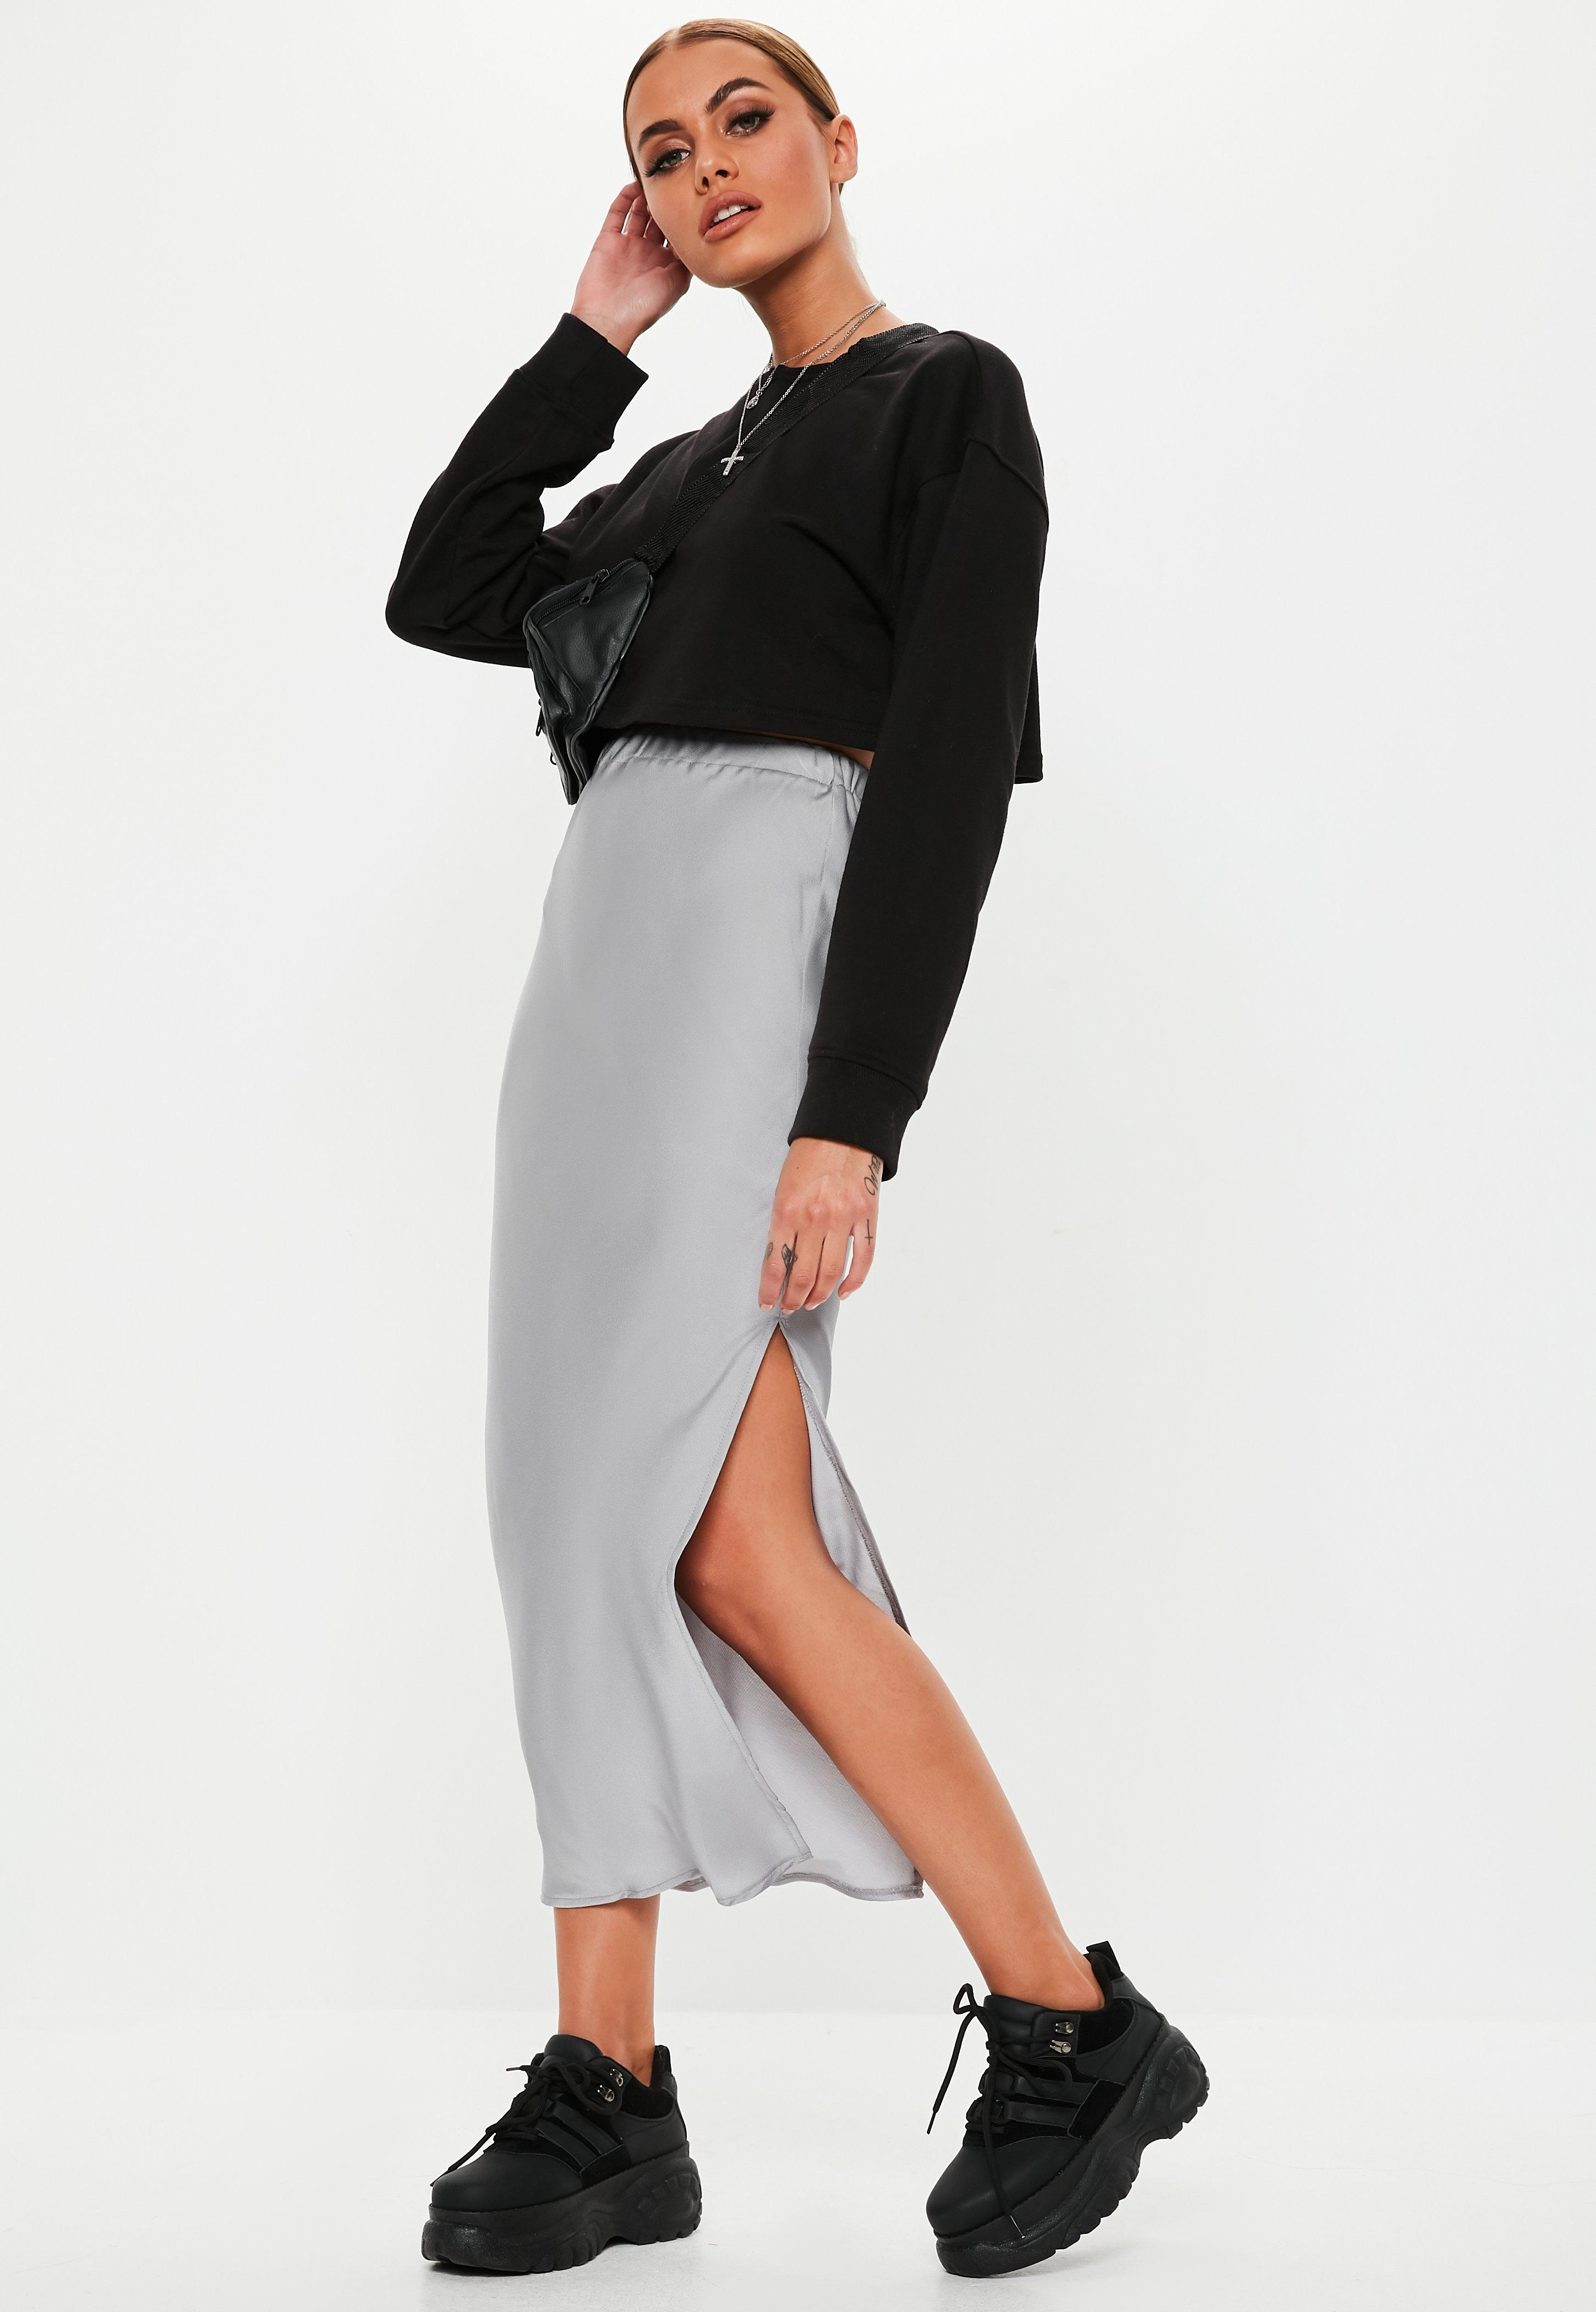 Missguided Checked Red Skirt Midi Size Uk 6 Damenmode Kleidung & Accessoires